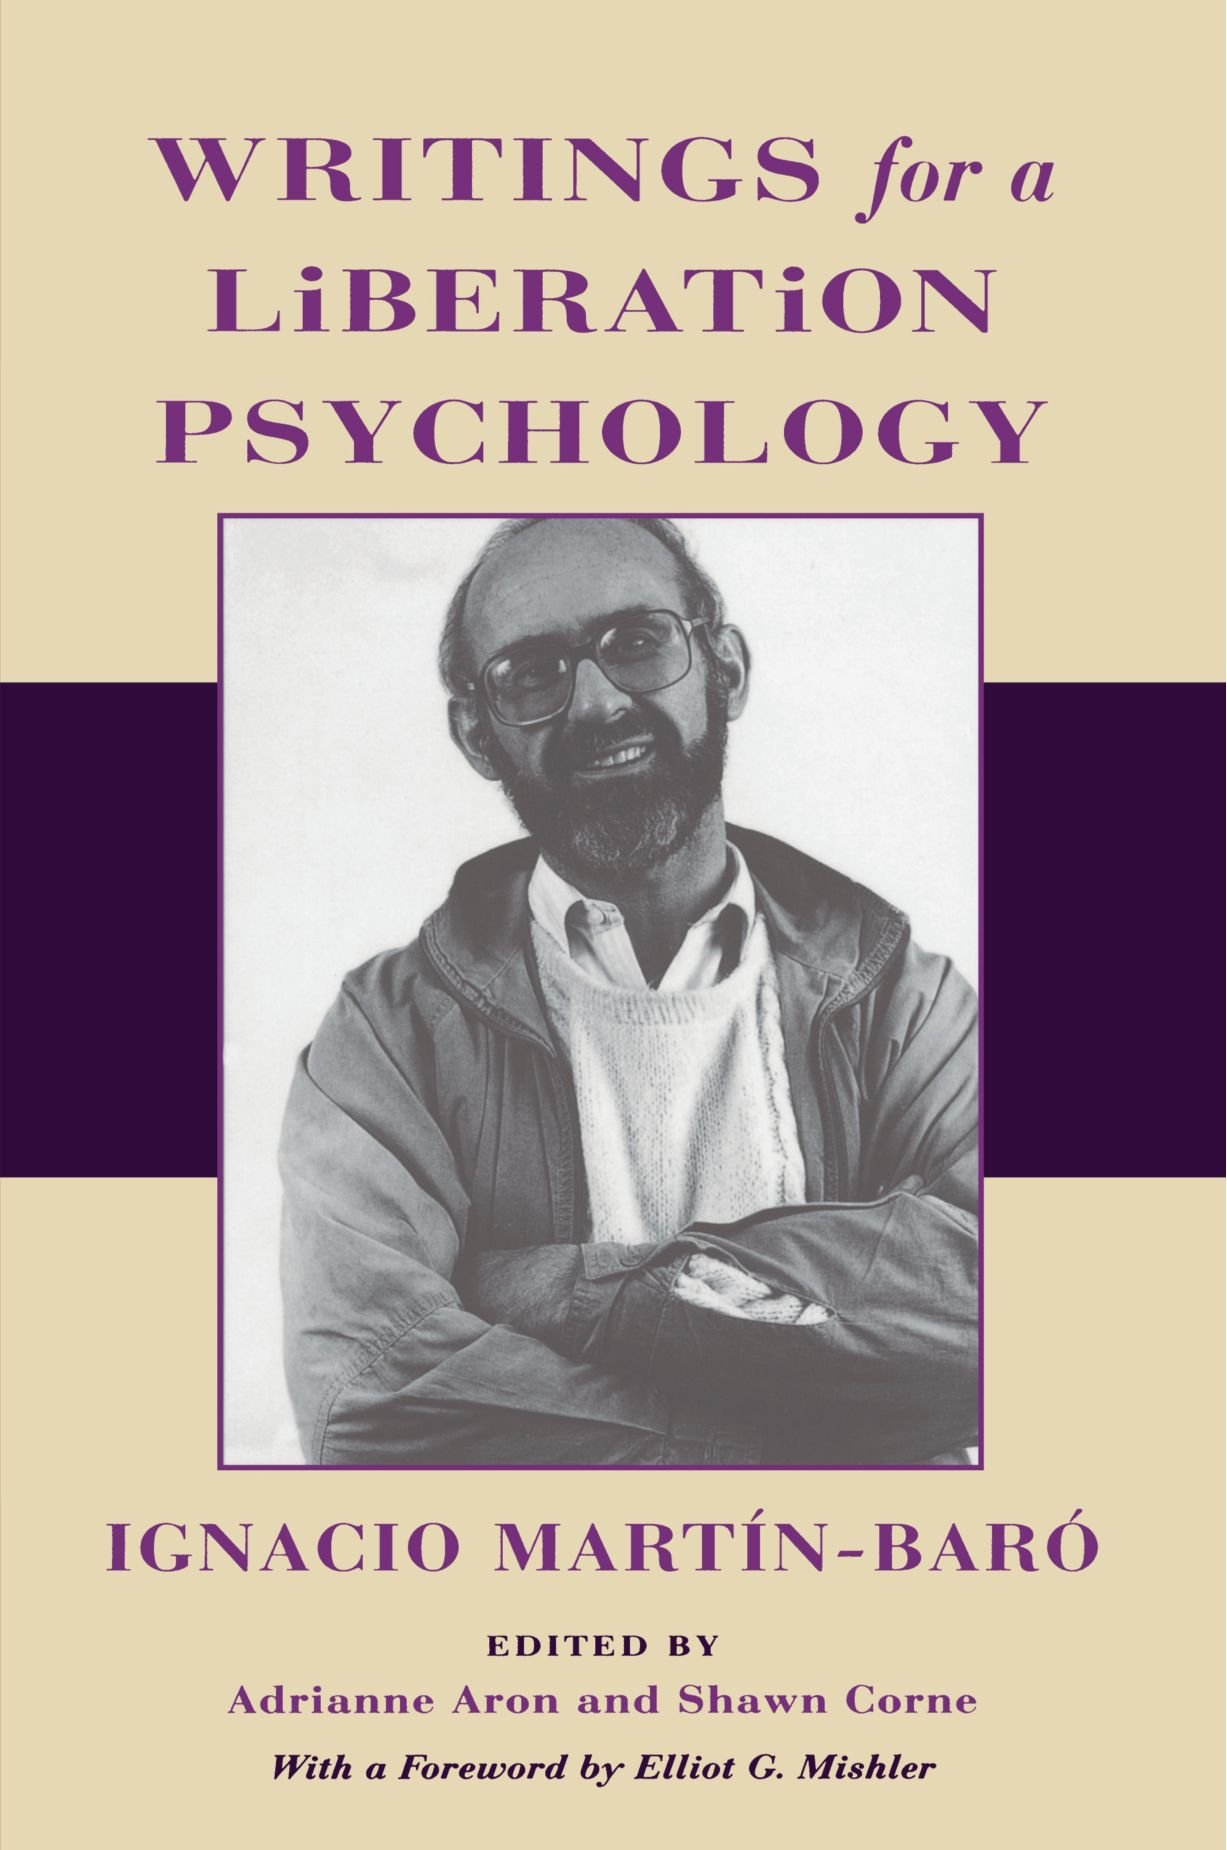 Writings for a Liberation Psychology: Amazon.co.uk: Ignacio Martín-Baró,  Adrianne Aon, Shawn Corne: 9780674962477: Books